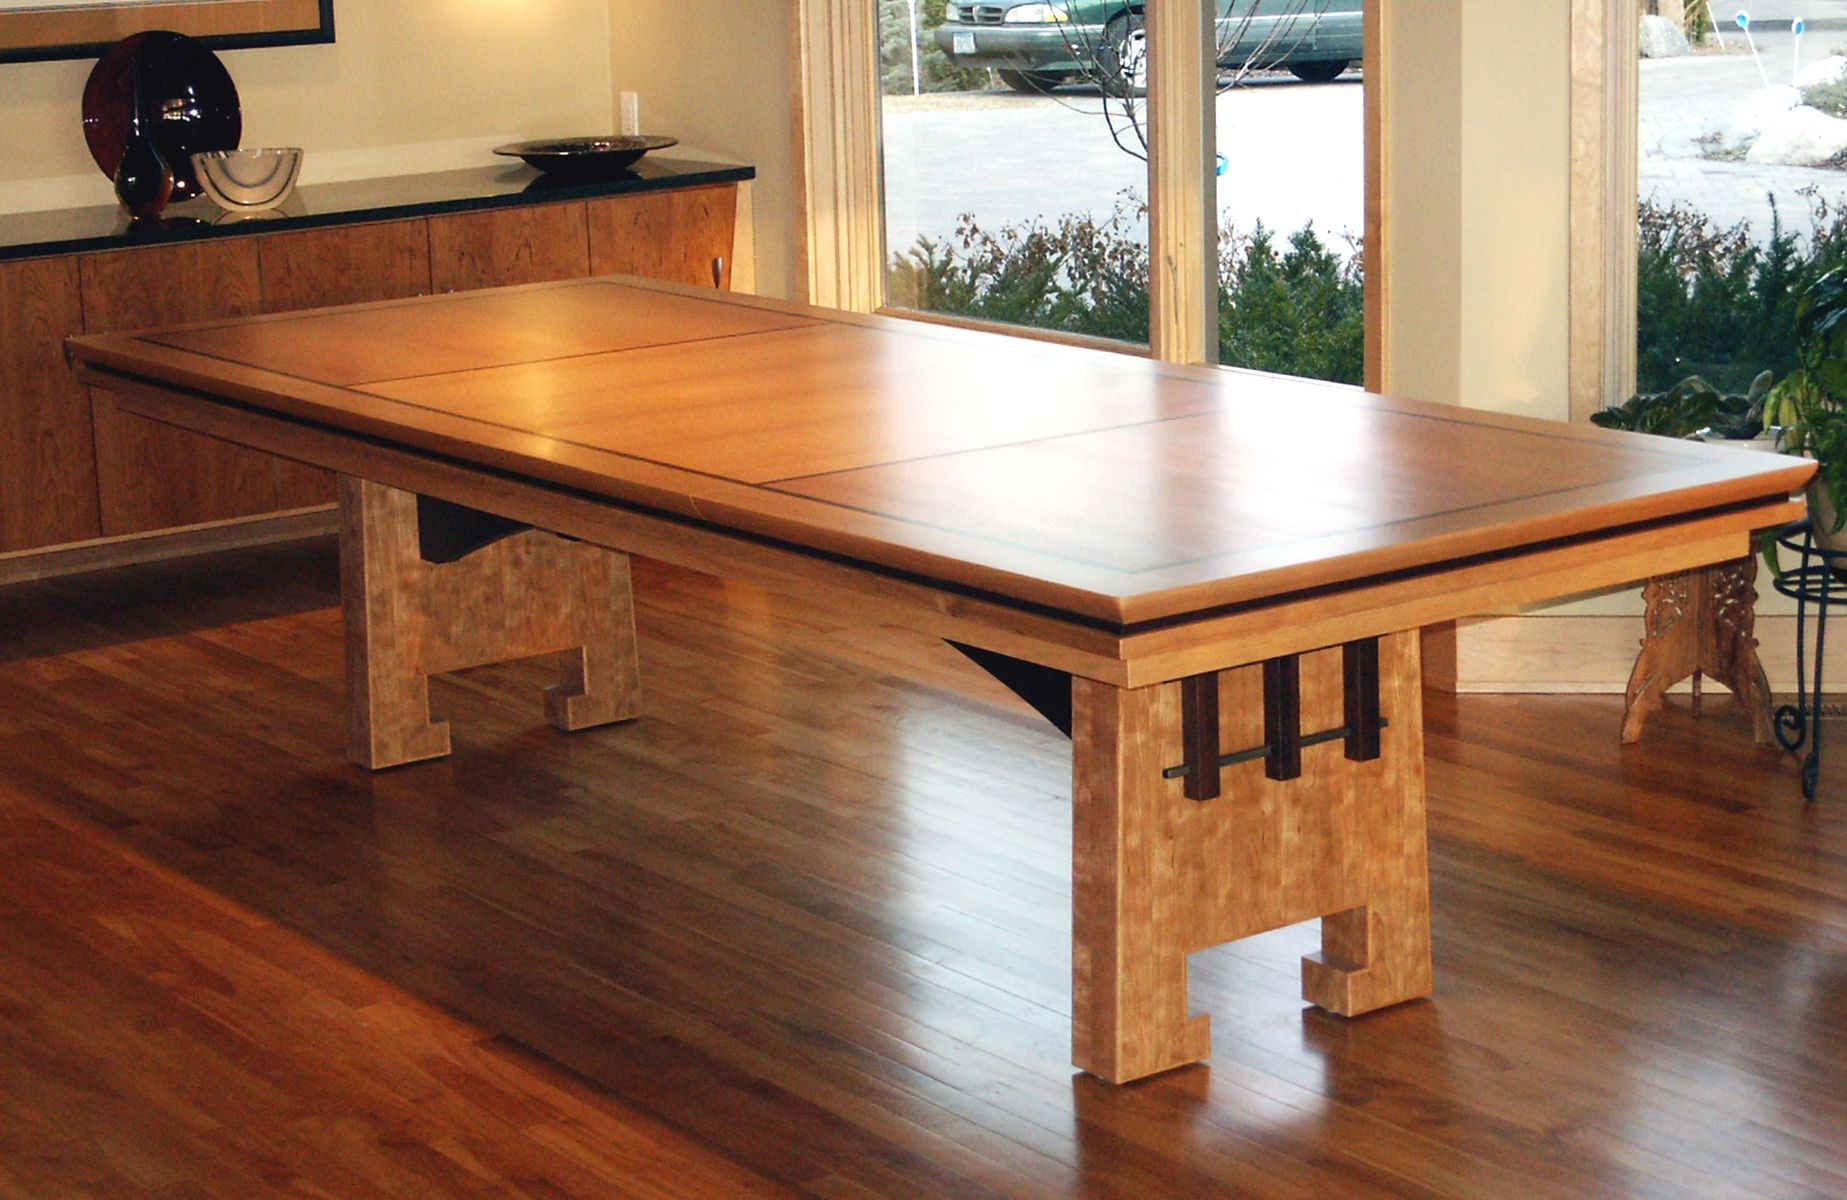 Handmade Trestle Dining Table by Third Street Studios  : 325324097 from www.custommade.com size 1847 x 1200 jpeg 276kB